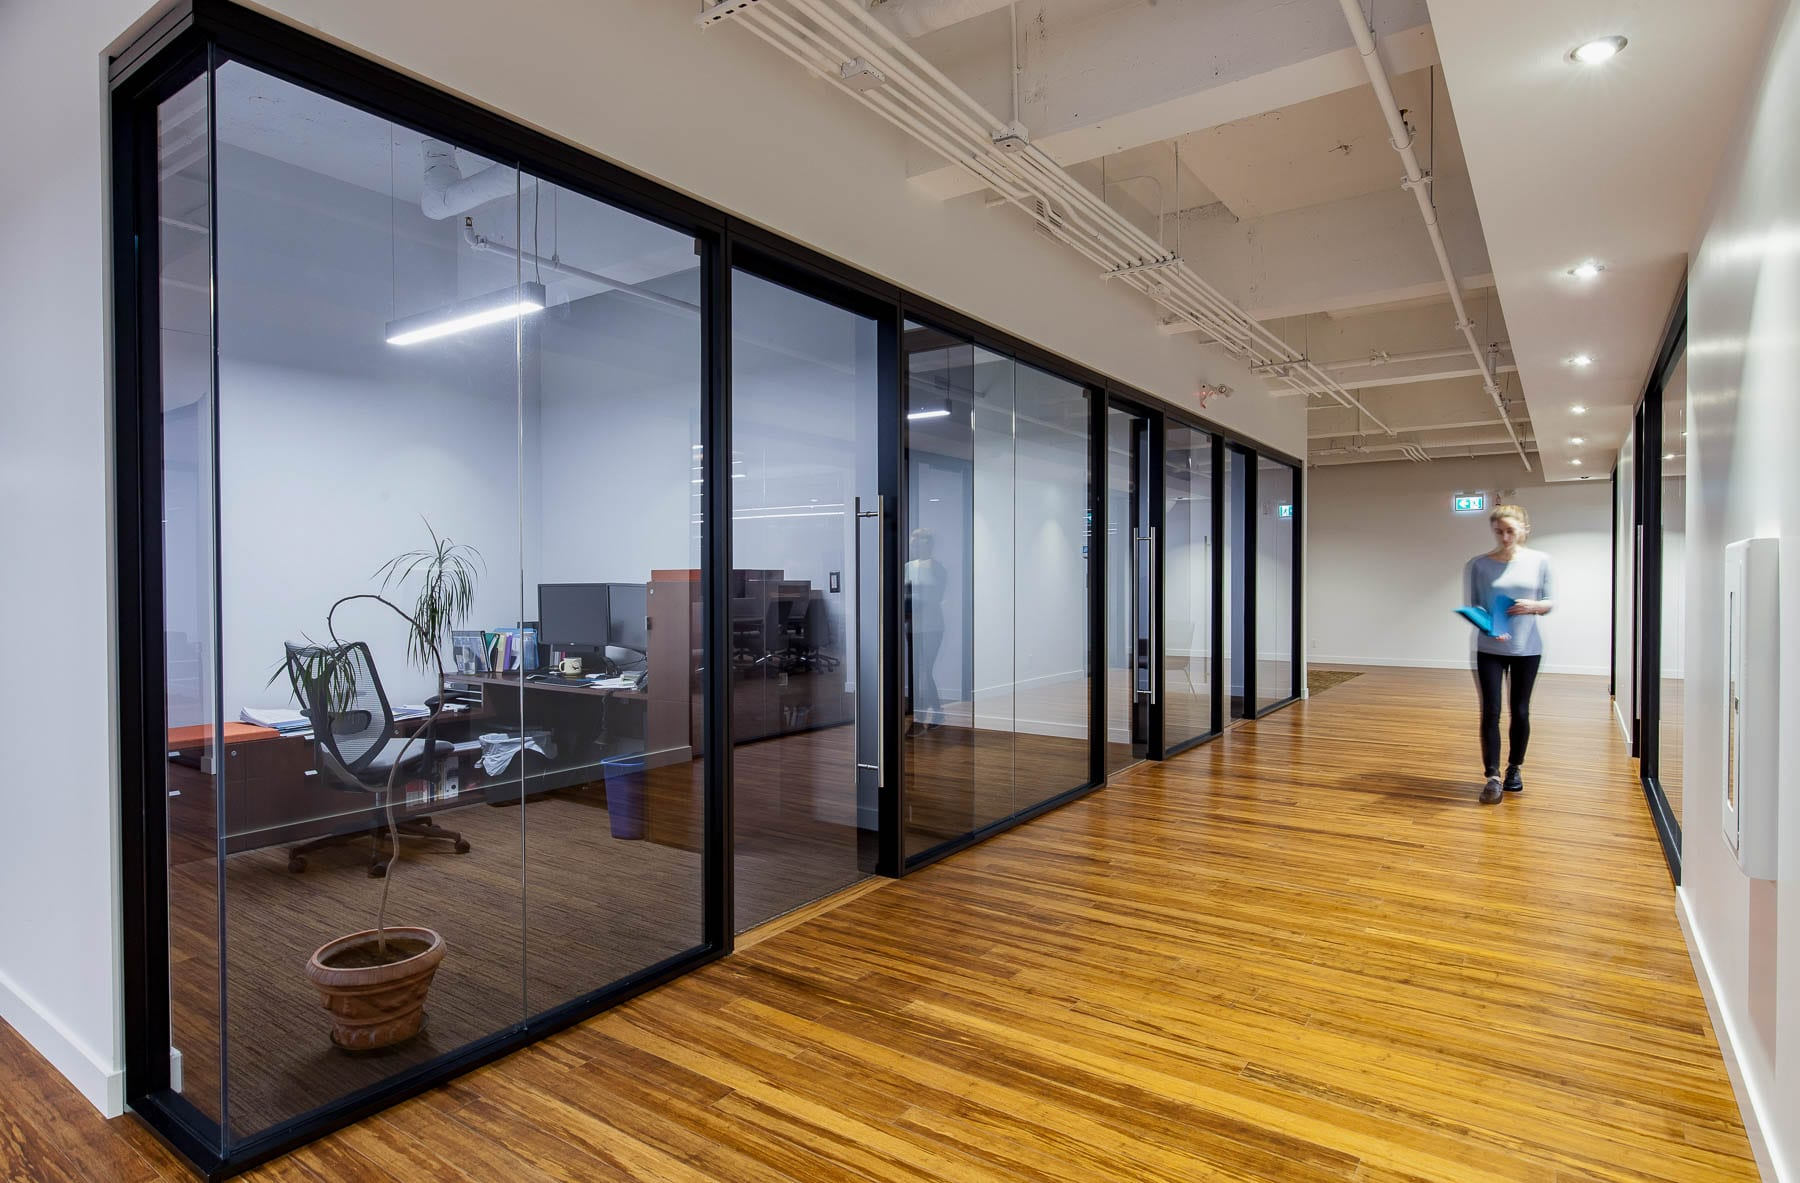 Contemporary Office TI at MIABC - corridor and offices with glazed modular walls